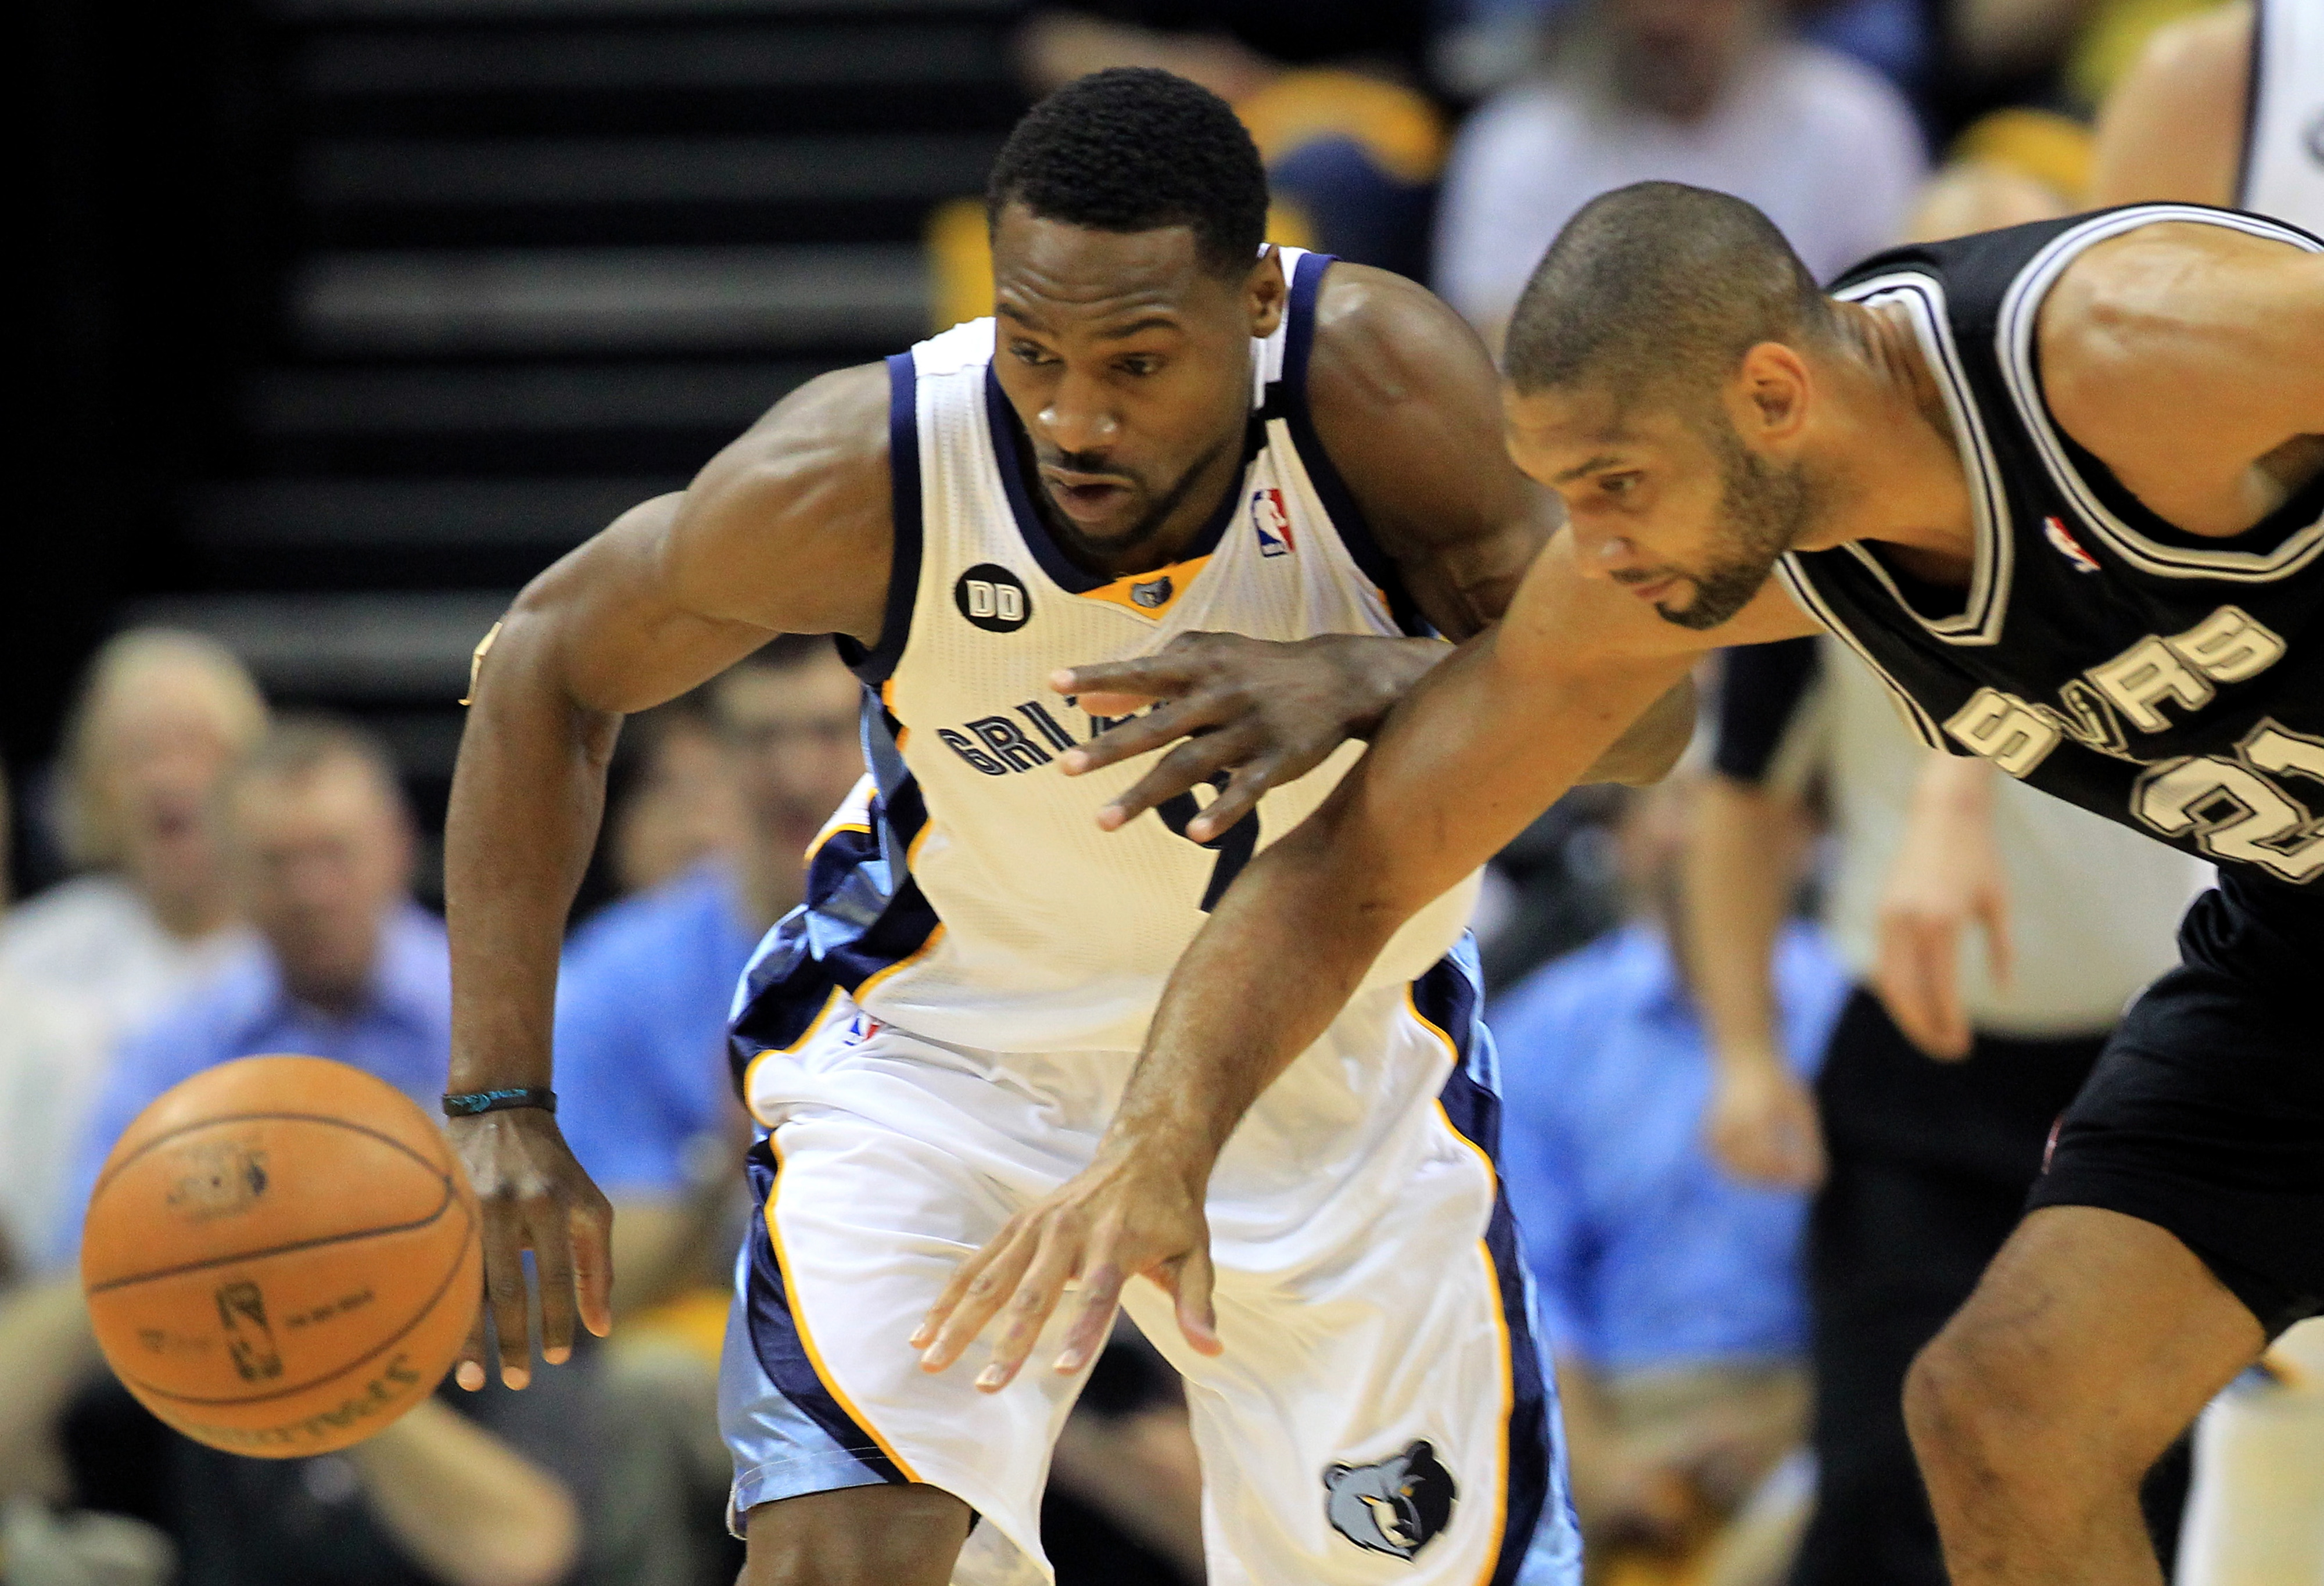 Spurs vs. Grizzlies Game 3, NBA Playoffs 2013: San Antonio storms back for 104-93 overtime win